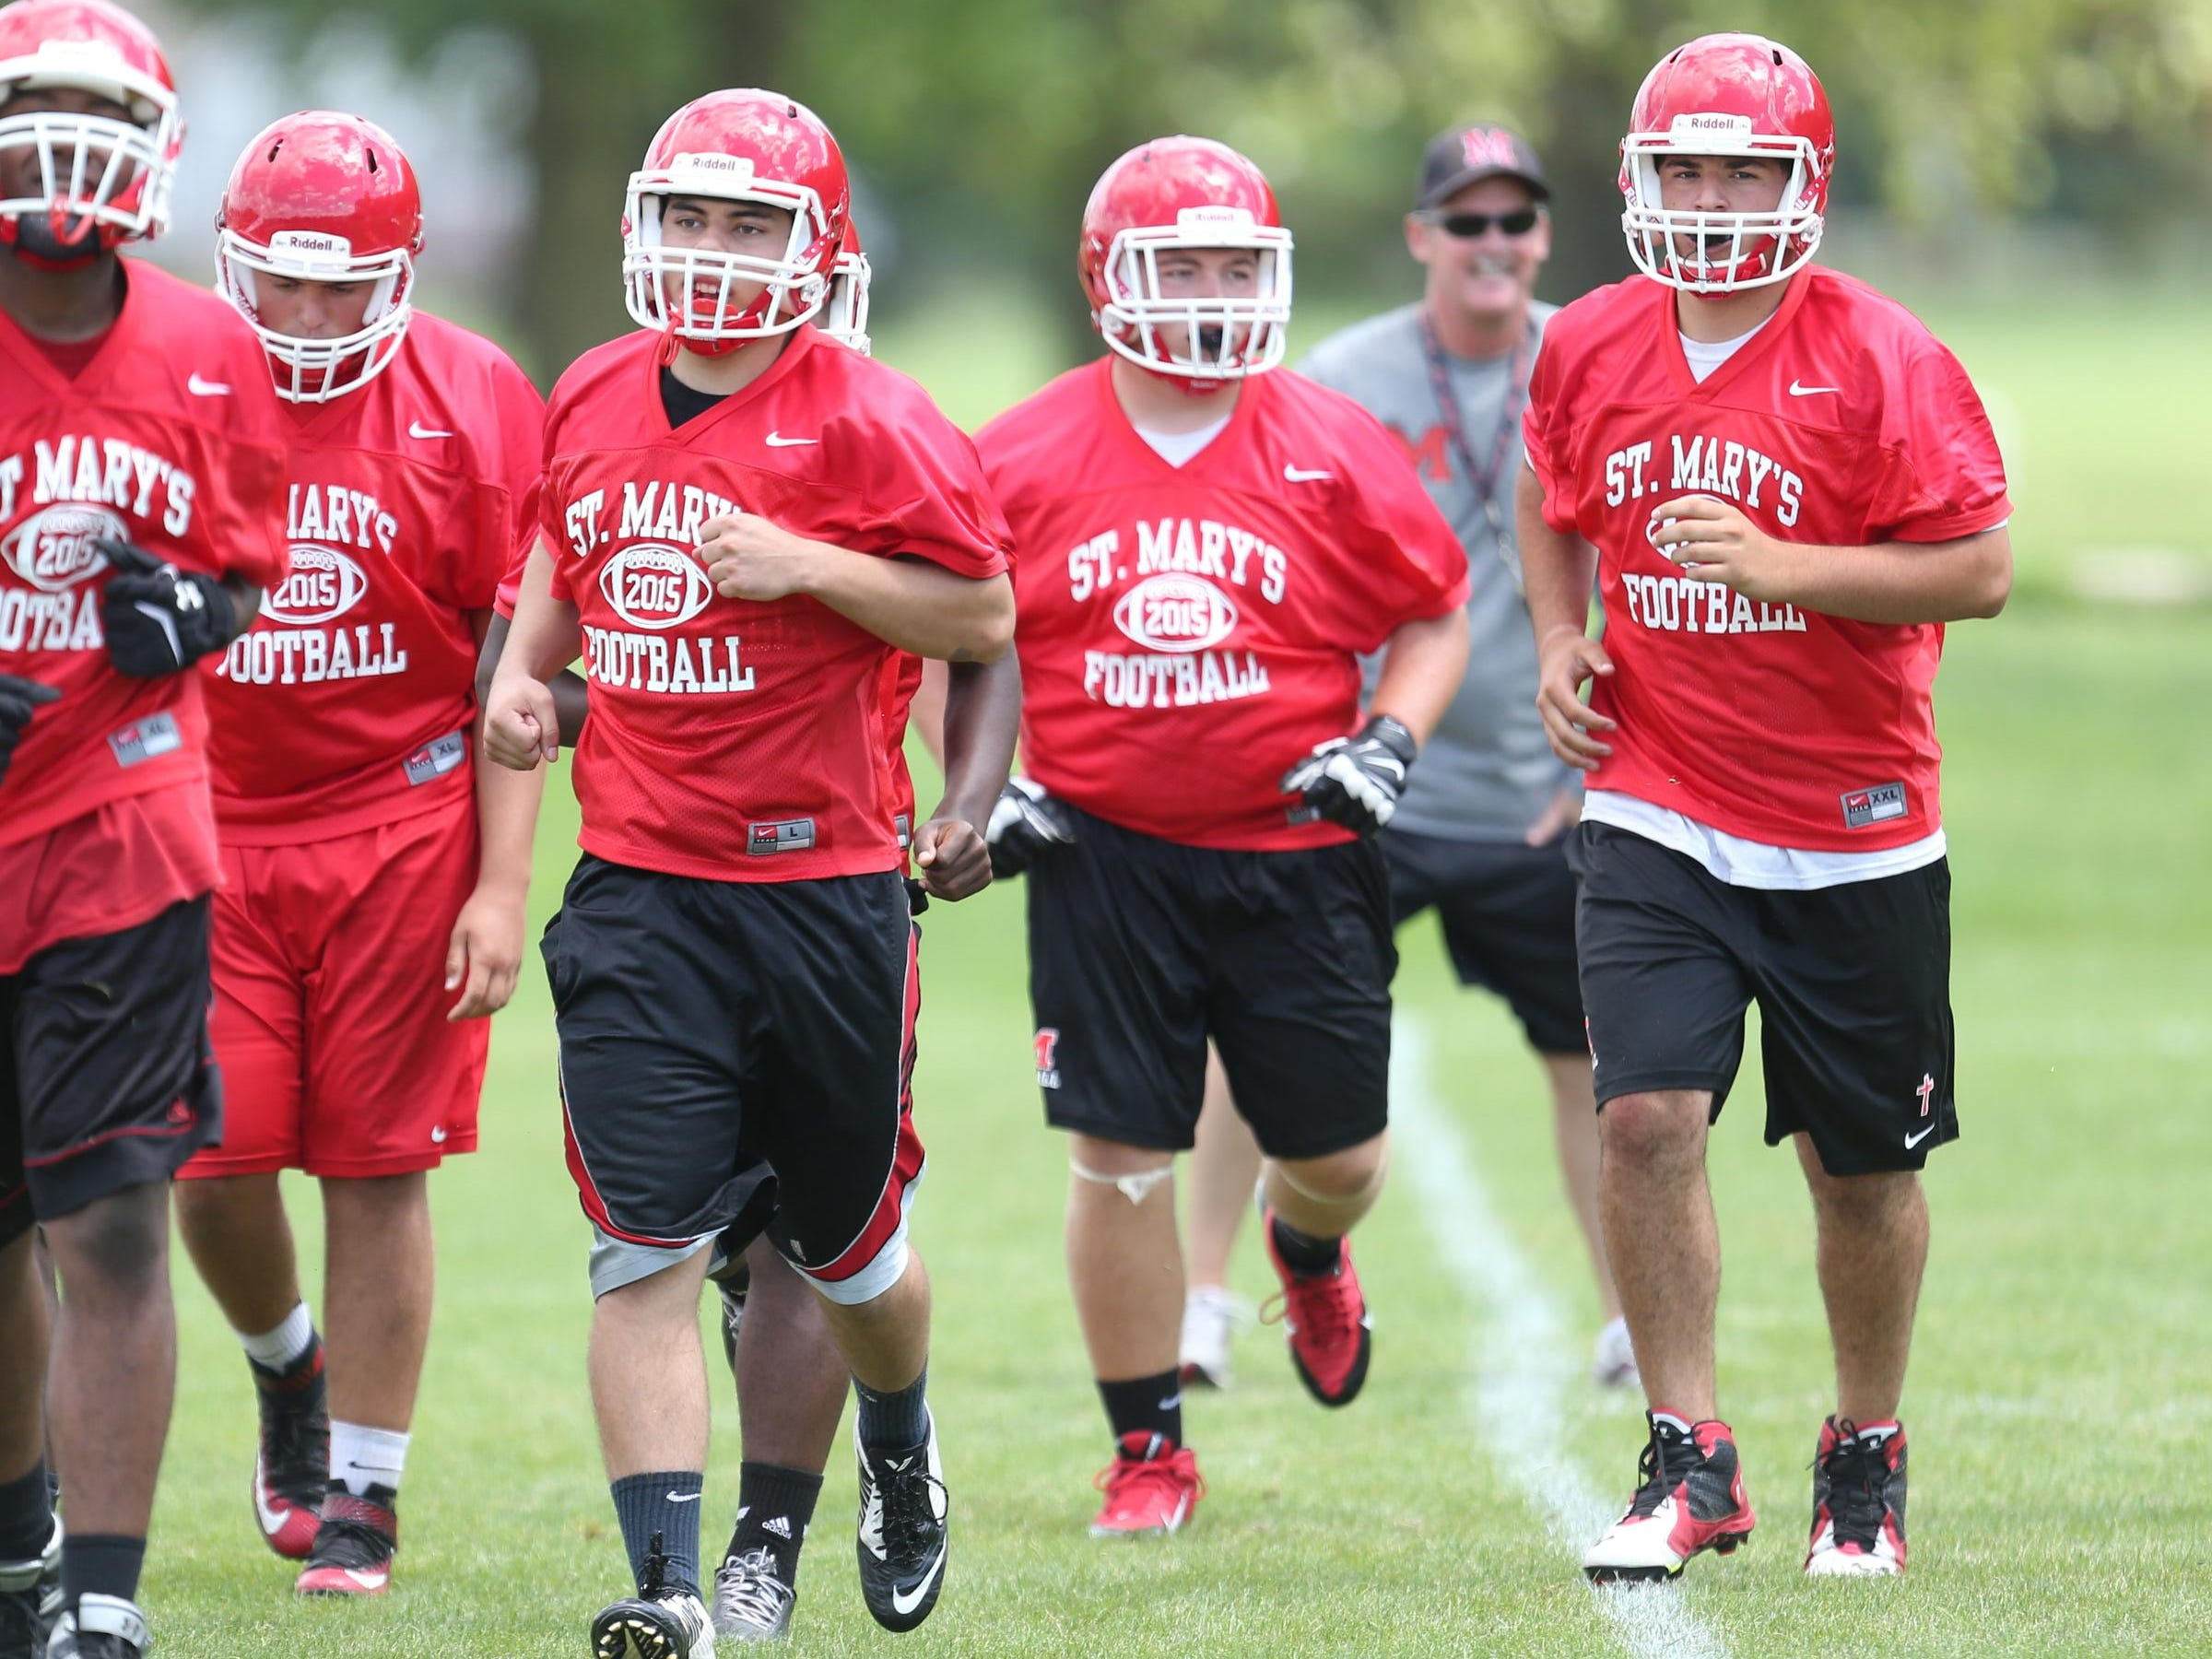 Orchard Lake St. Mary's high school football players go through drills during practice on Tuesday, August 11, 2015 in Orchard Lake Michigan.